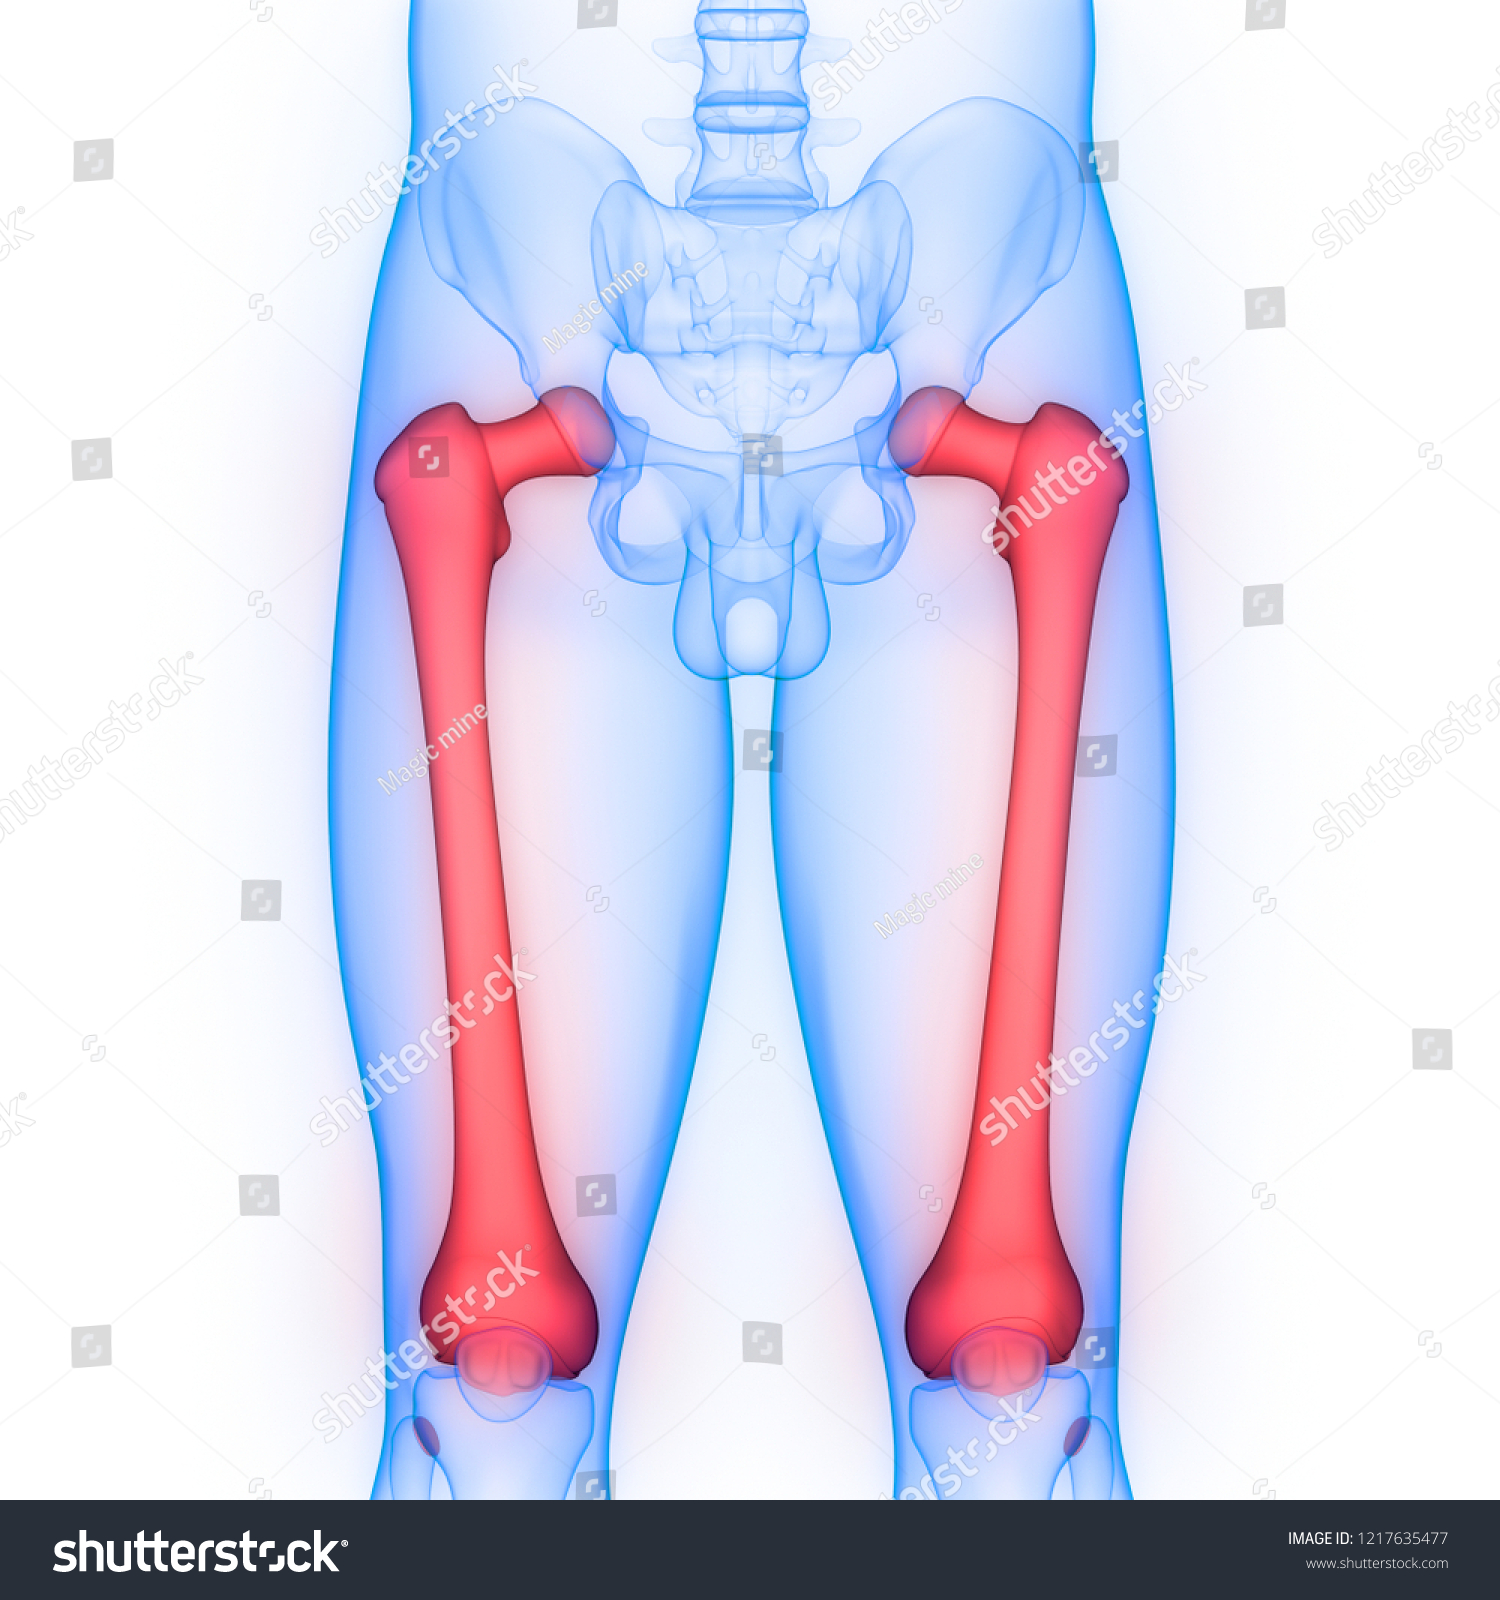 Human Skeleton System Femur Bones Anatomy Stock Illustration